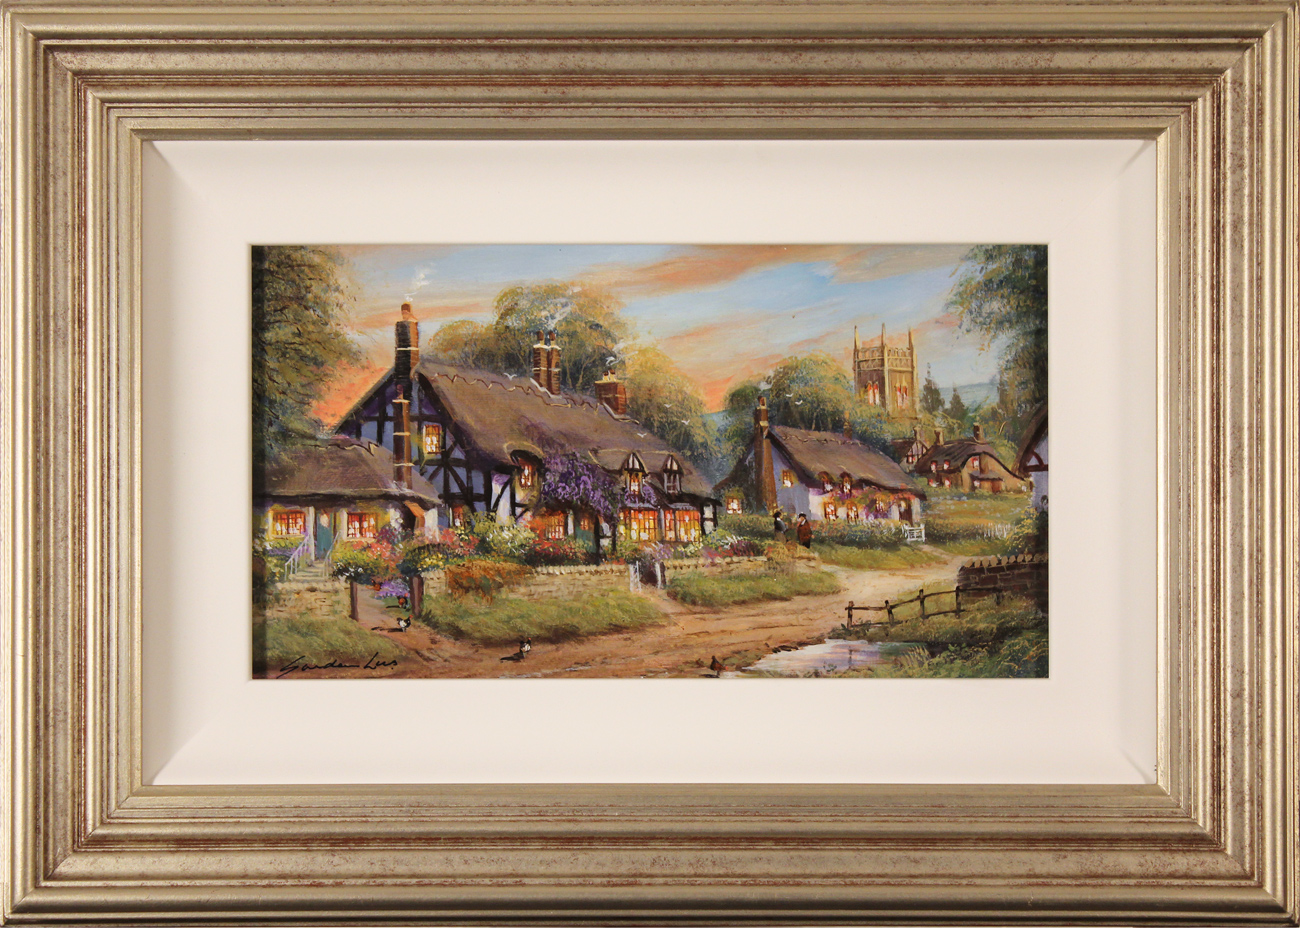 Gordon Lees, Original oil painting on panel, Summer Evensong, click to enlarge